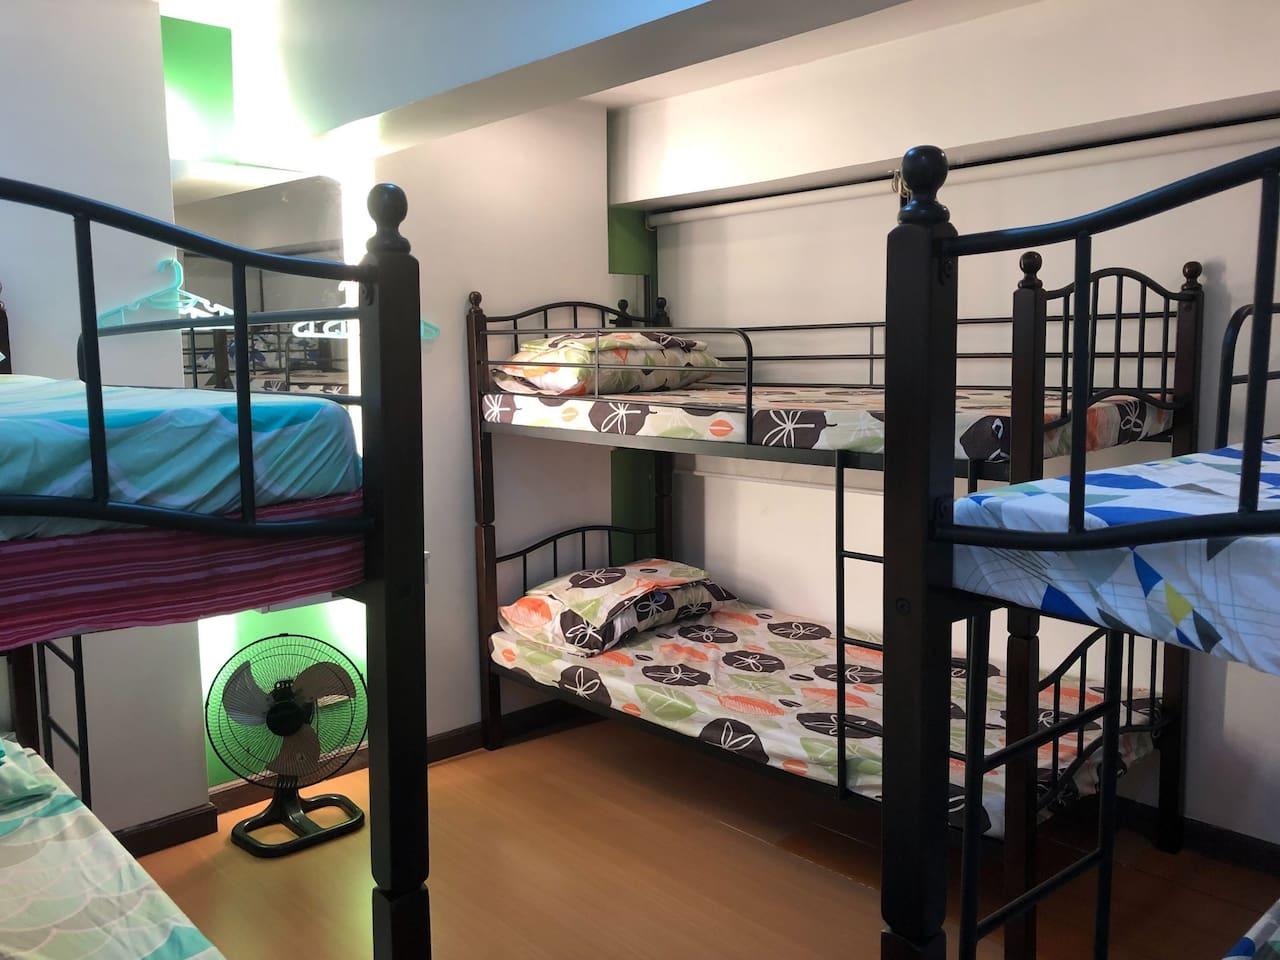 Shared Bedroom with 3 bunk beds